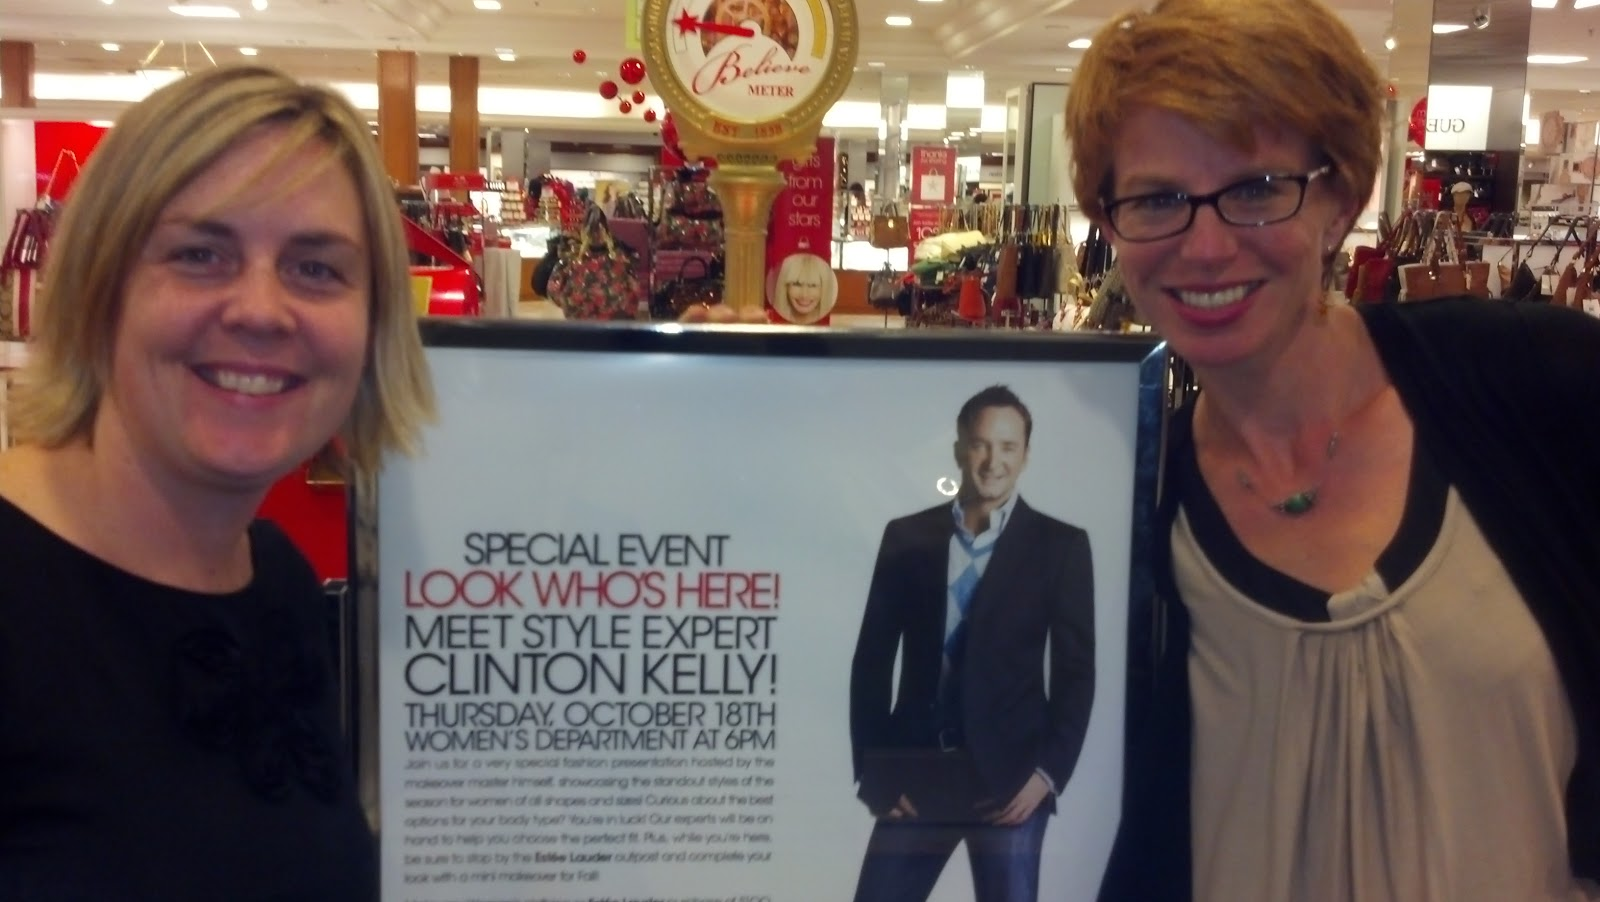 Clinton Kelly Marriage